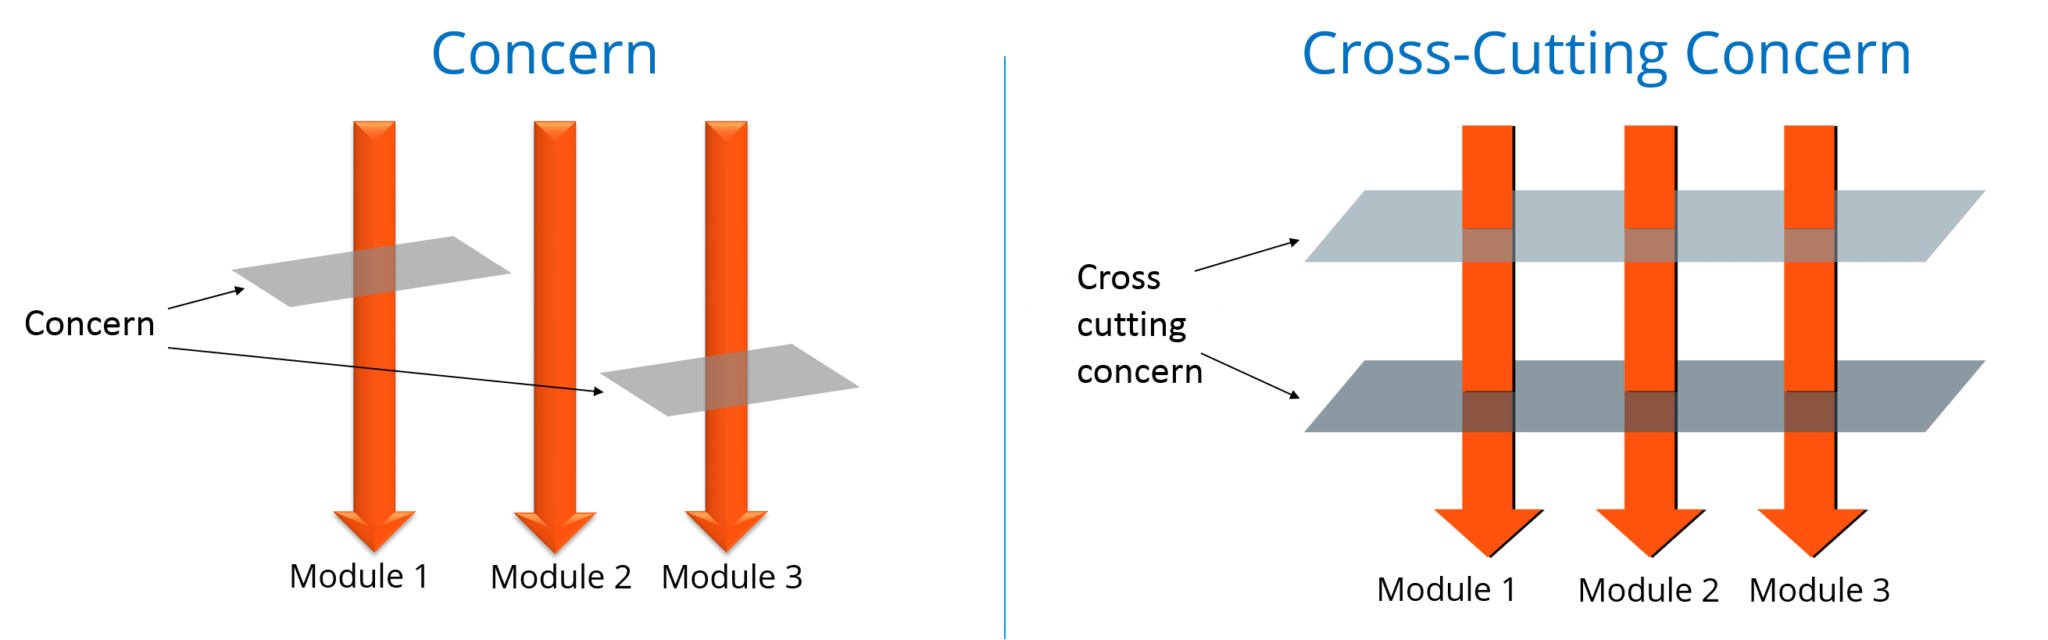 cross cutting concern vs concern - Spring Framework Interview Questions - Edureka!